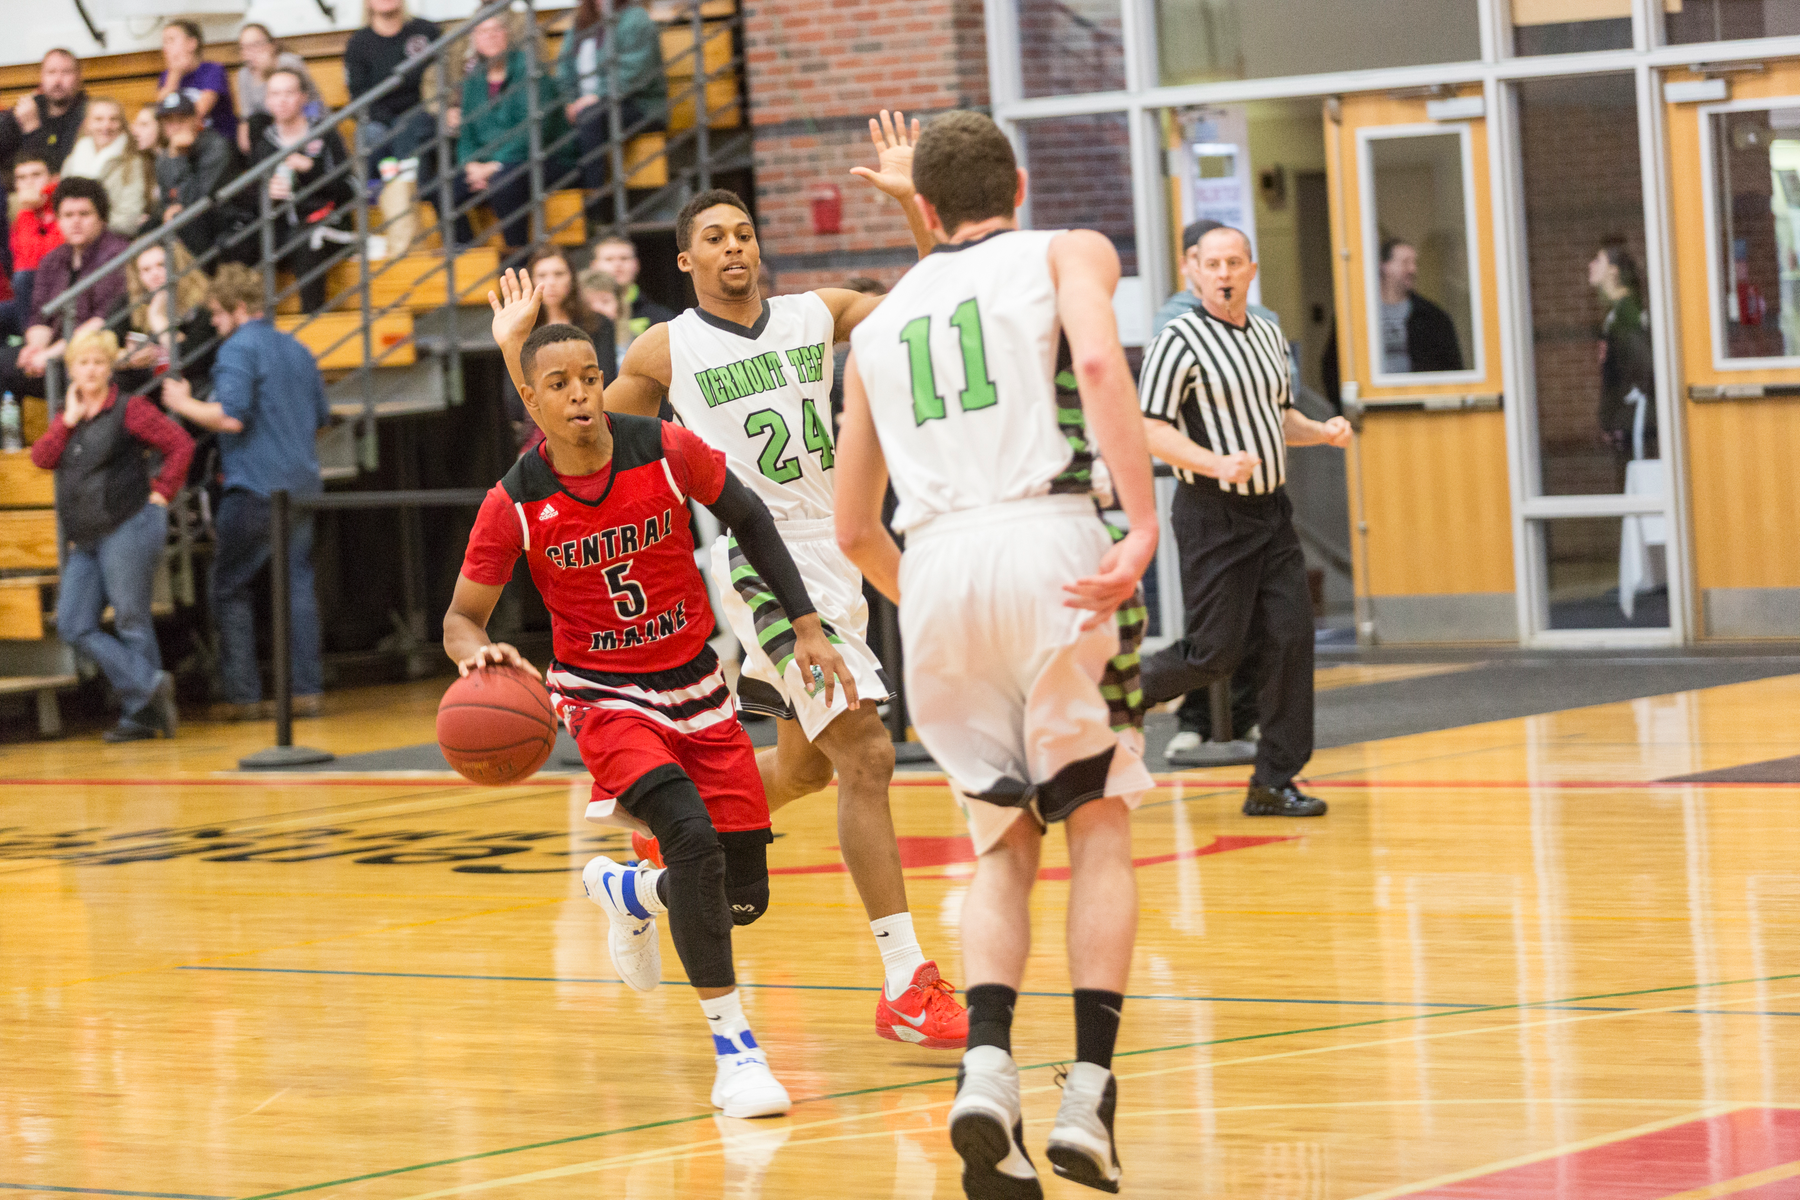 Home Crowd Leads Mustangs to Victory Over SMCC